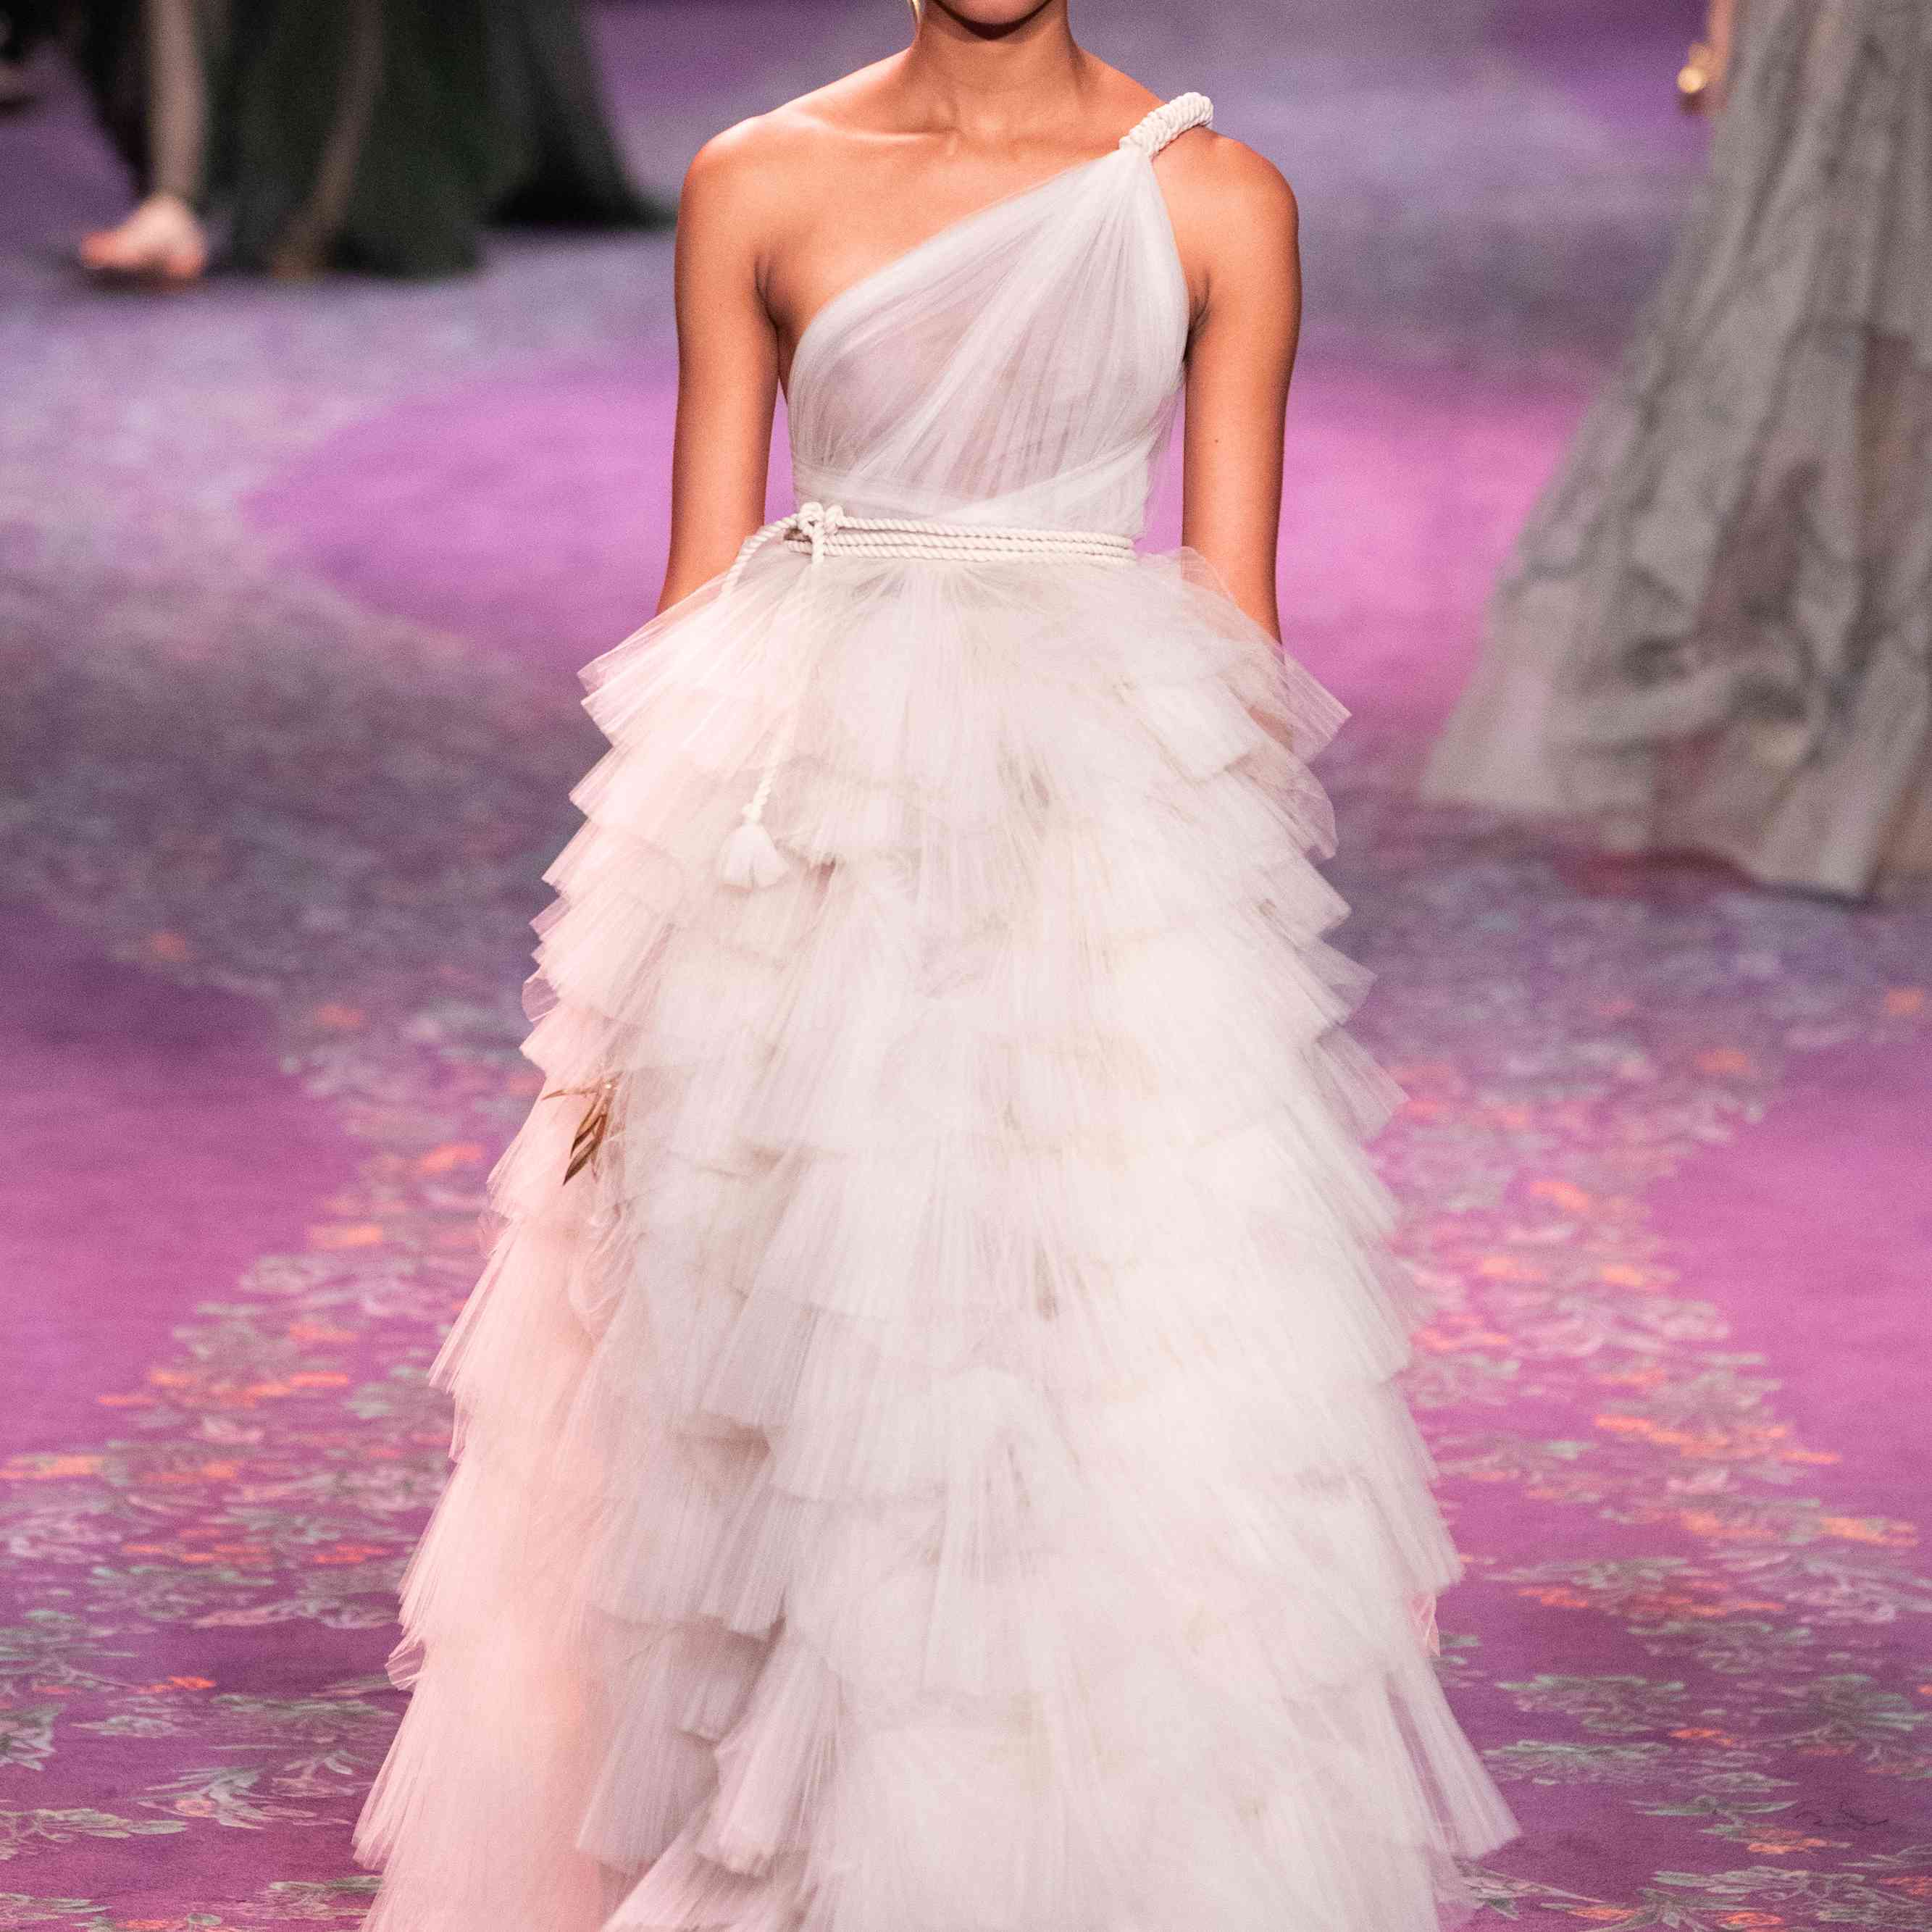 Dior Couture Spring Summer 2020